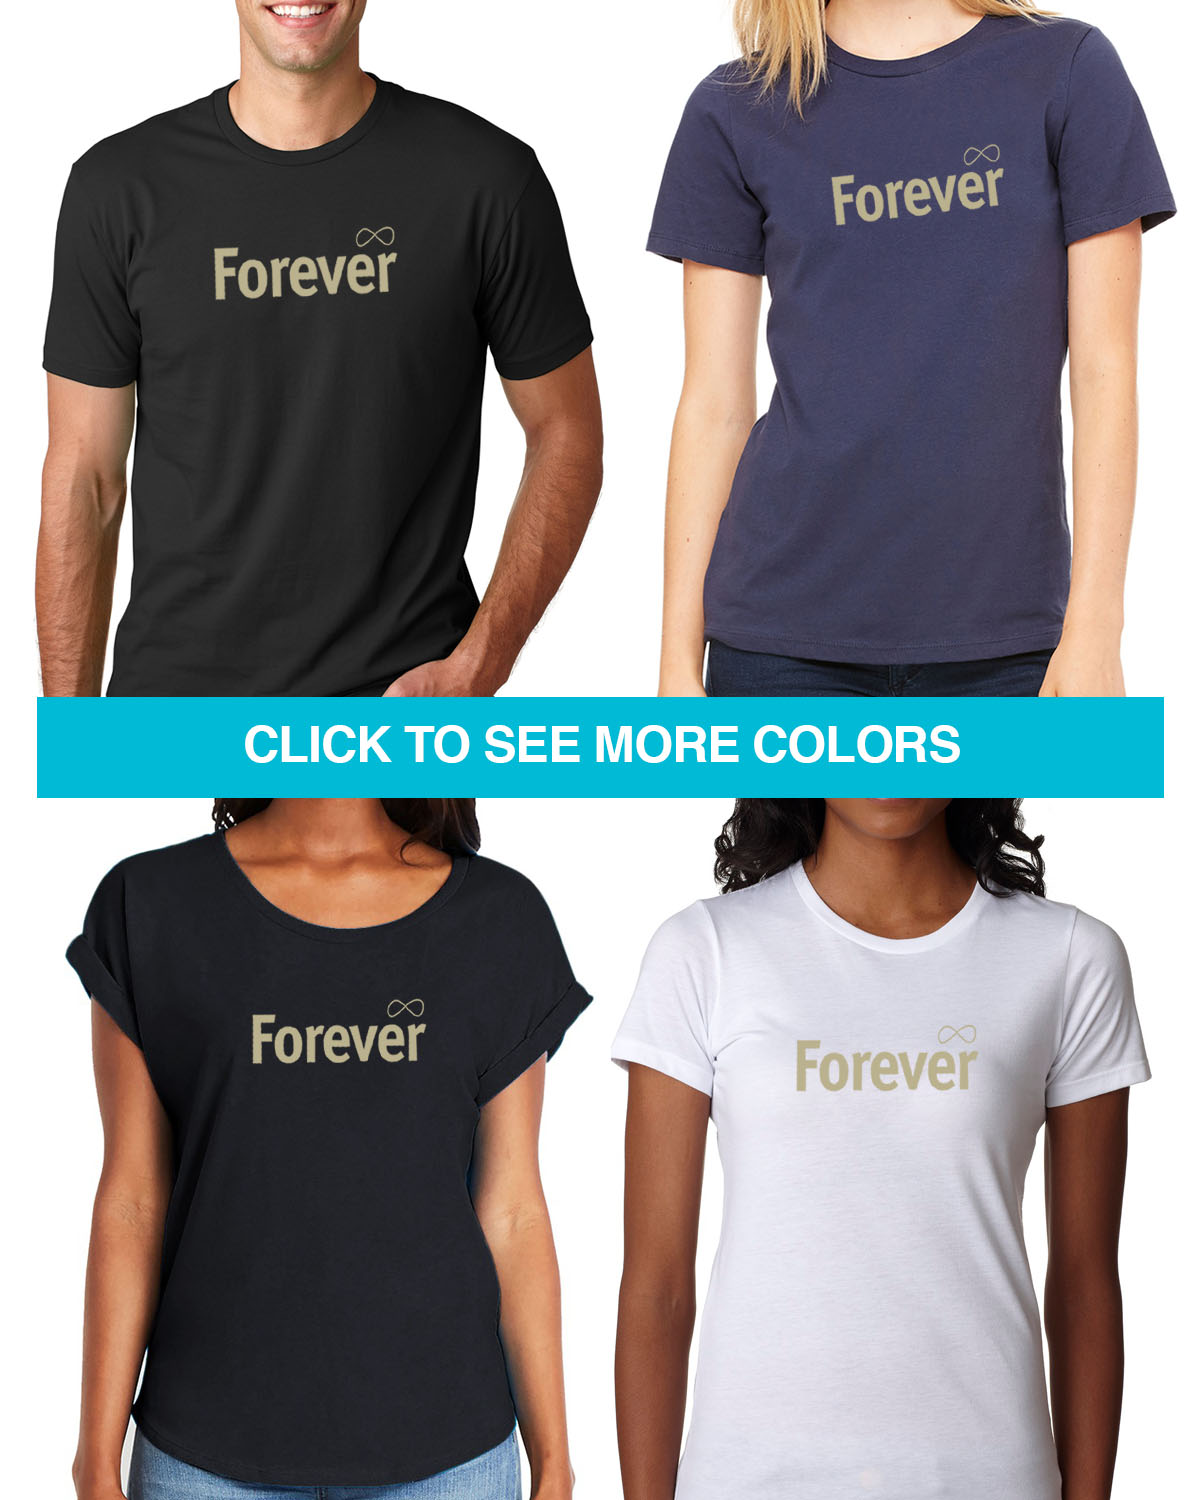 Forever Tees for Men & Women